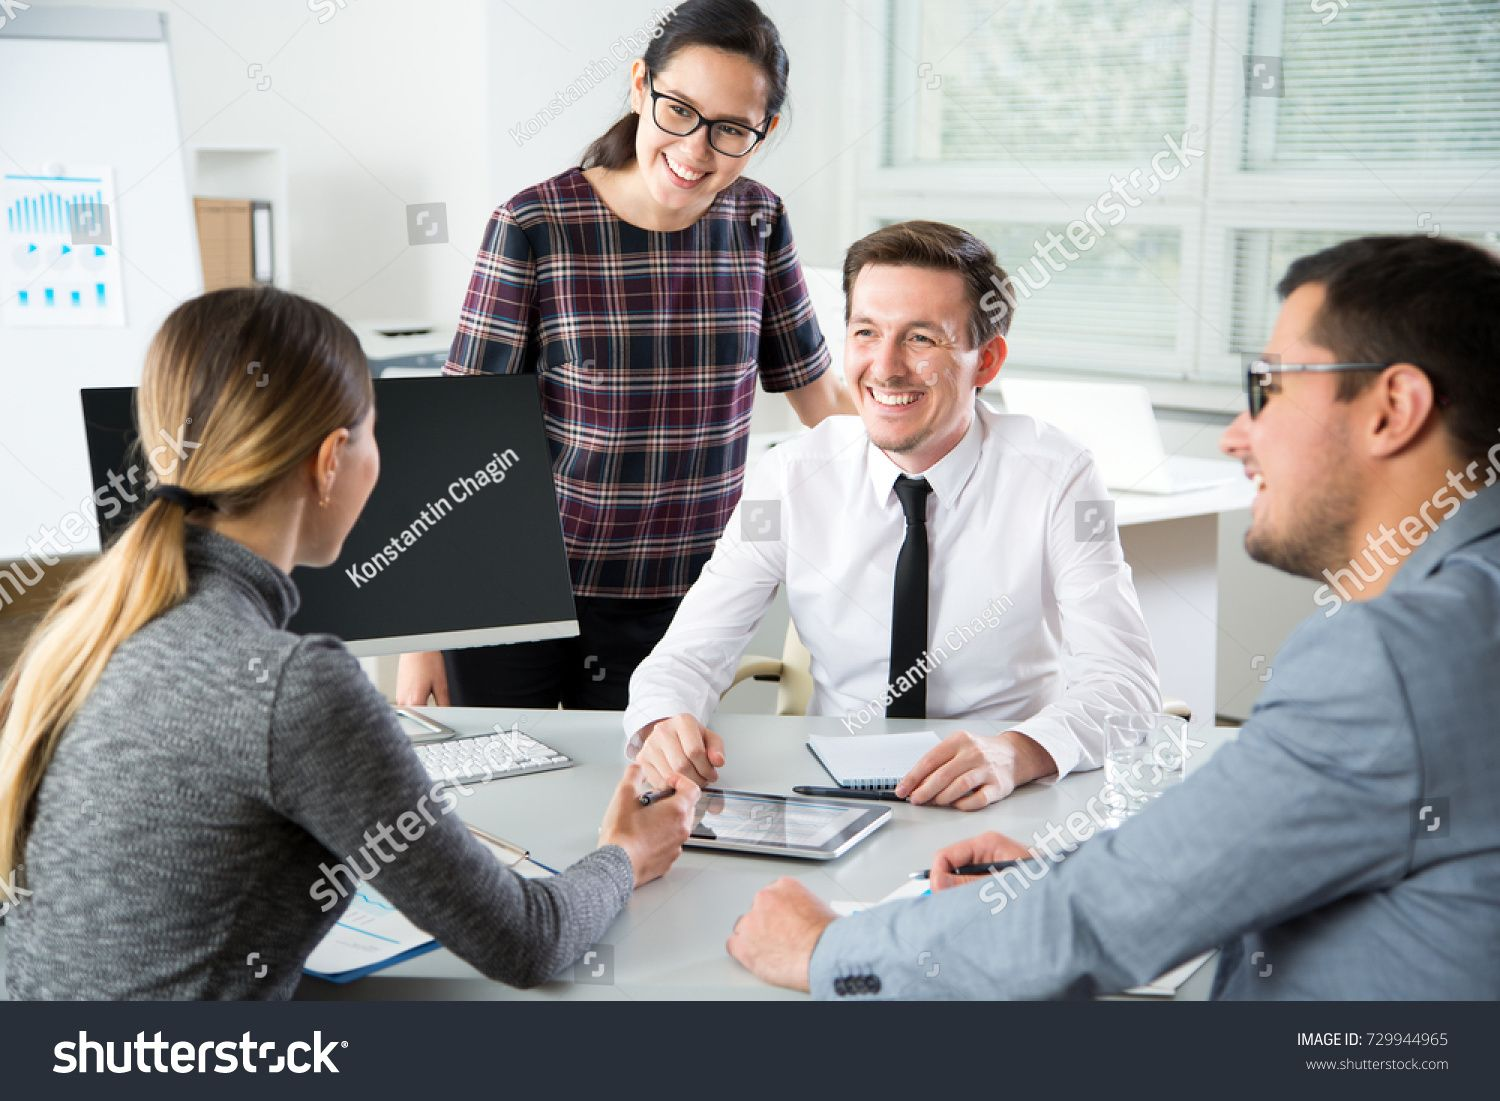 Group Of Business People At A Meeting In The Officebusiness Group